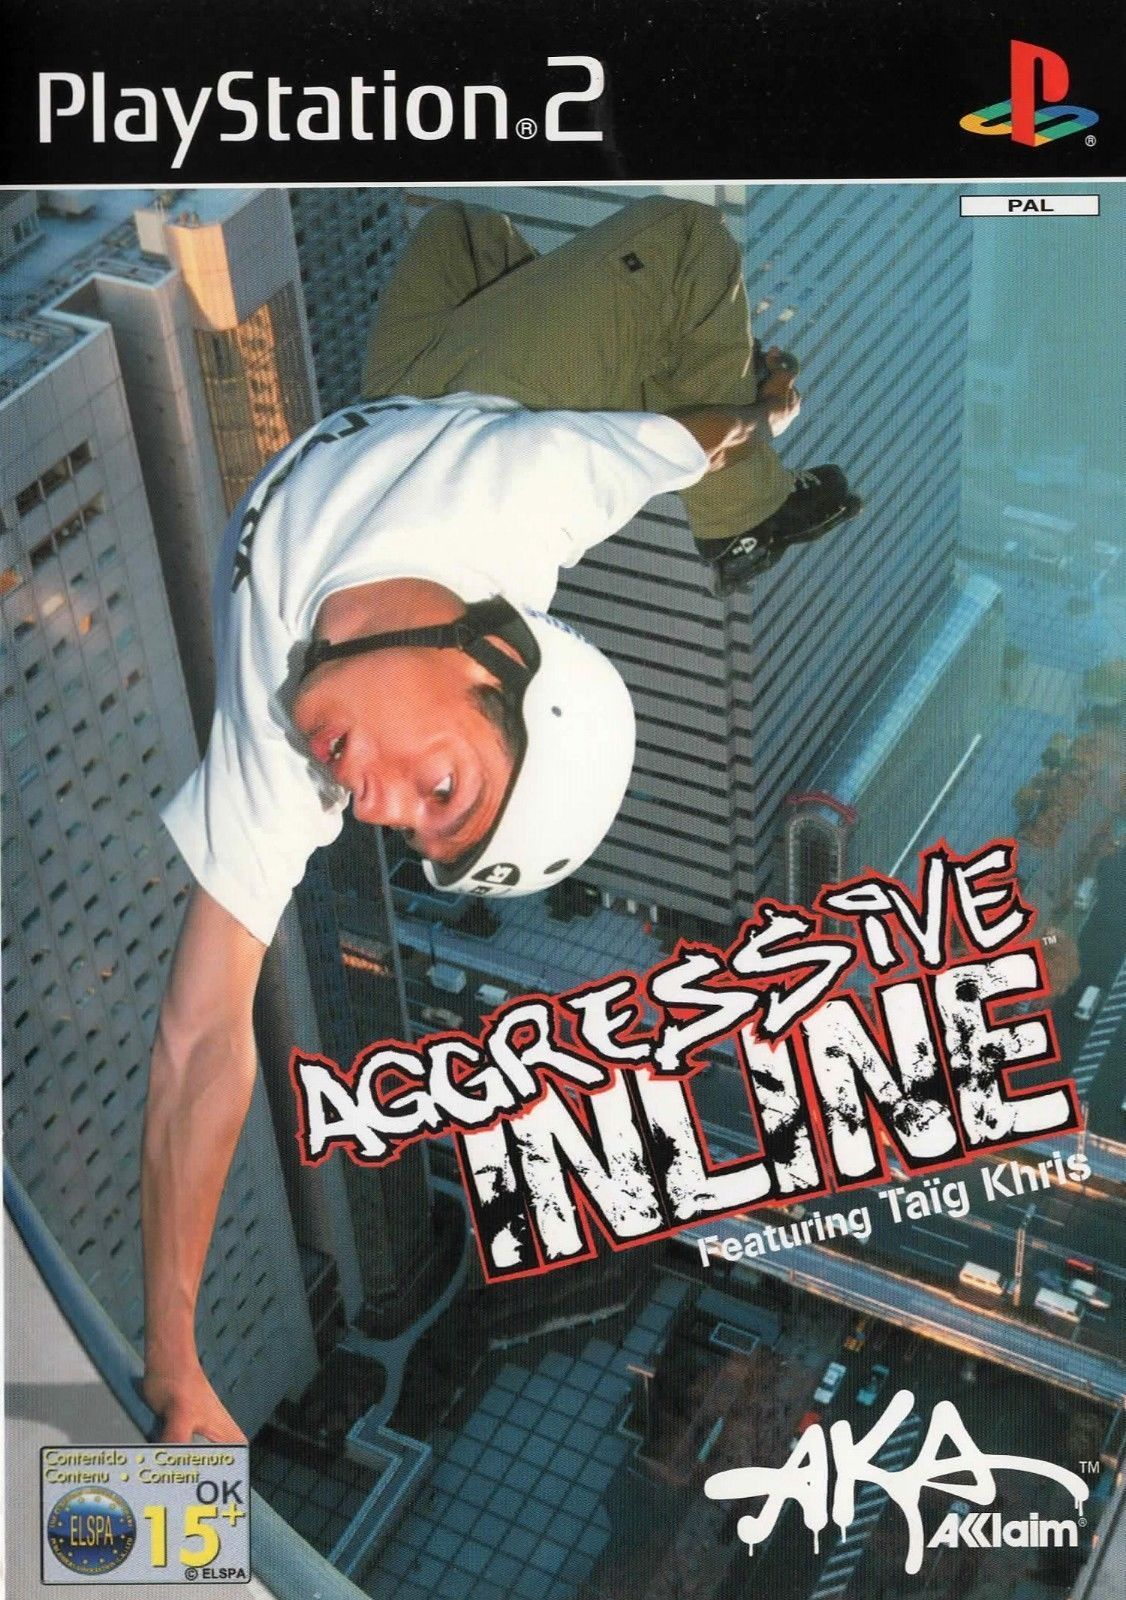 Aggresive Inline Featuring Taig Khris